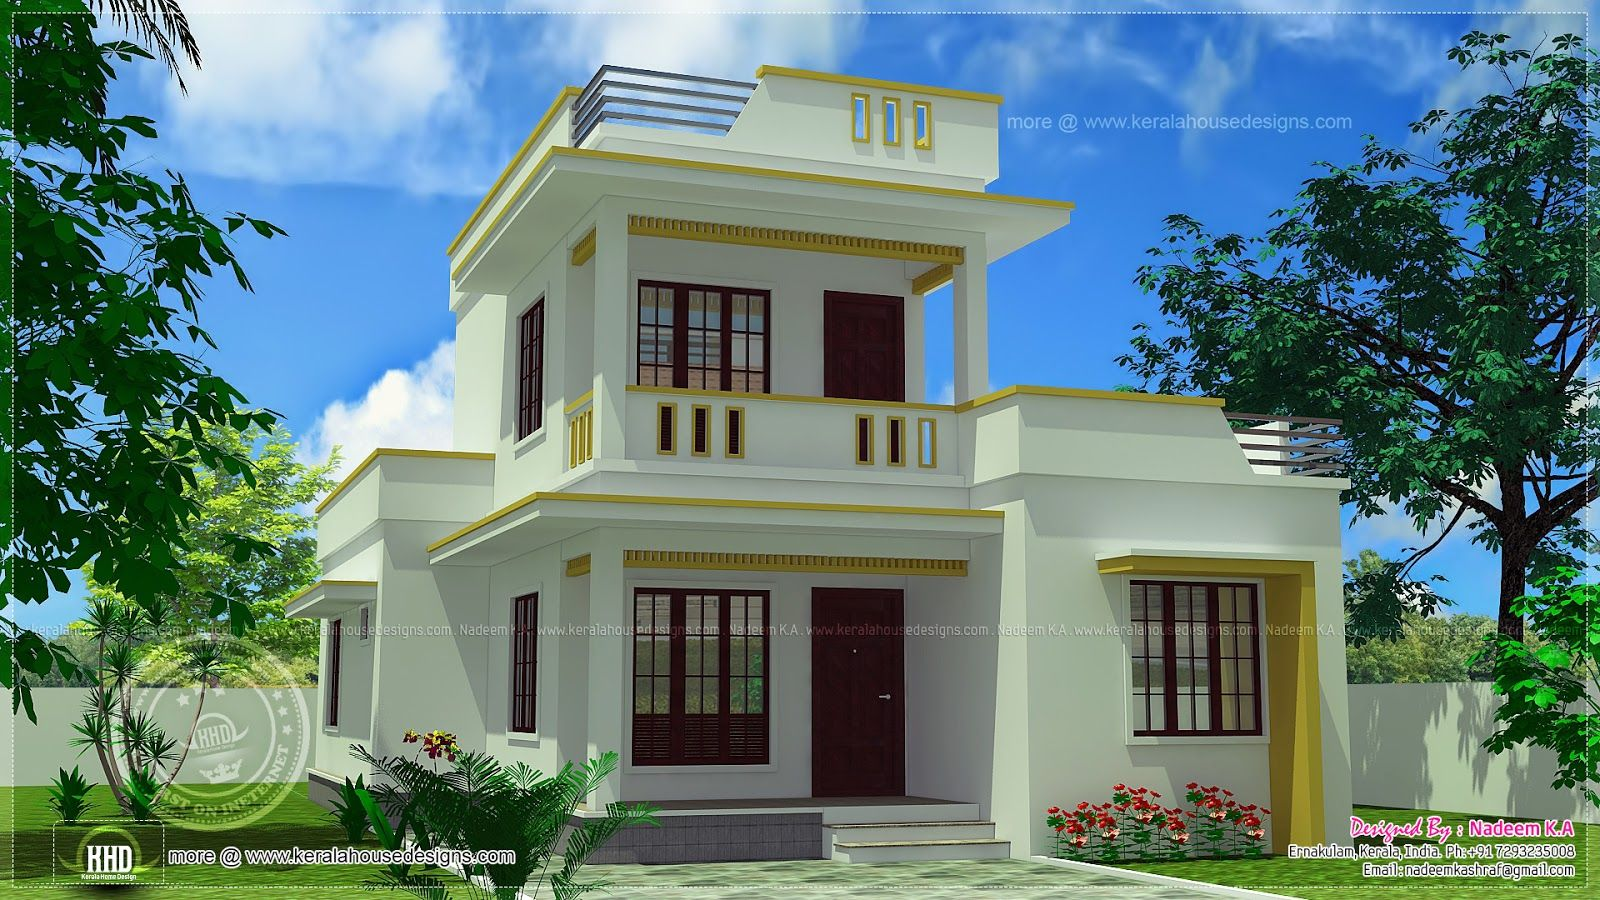 Roof home design feet kerala plans simple modern house for Simple house plans in india